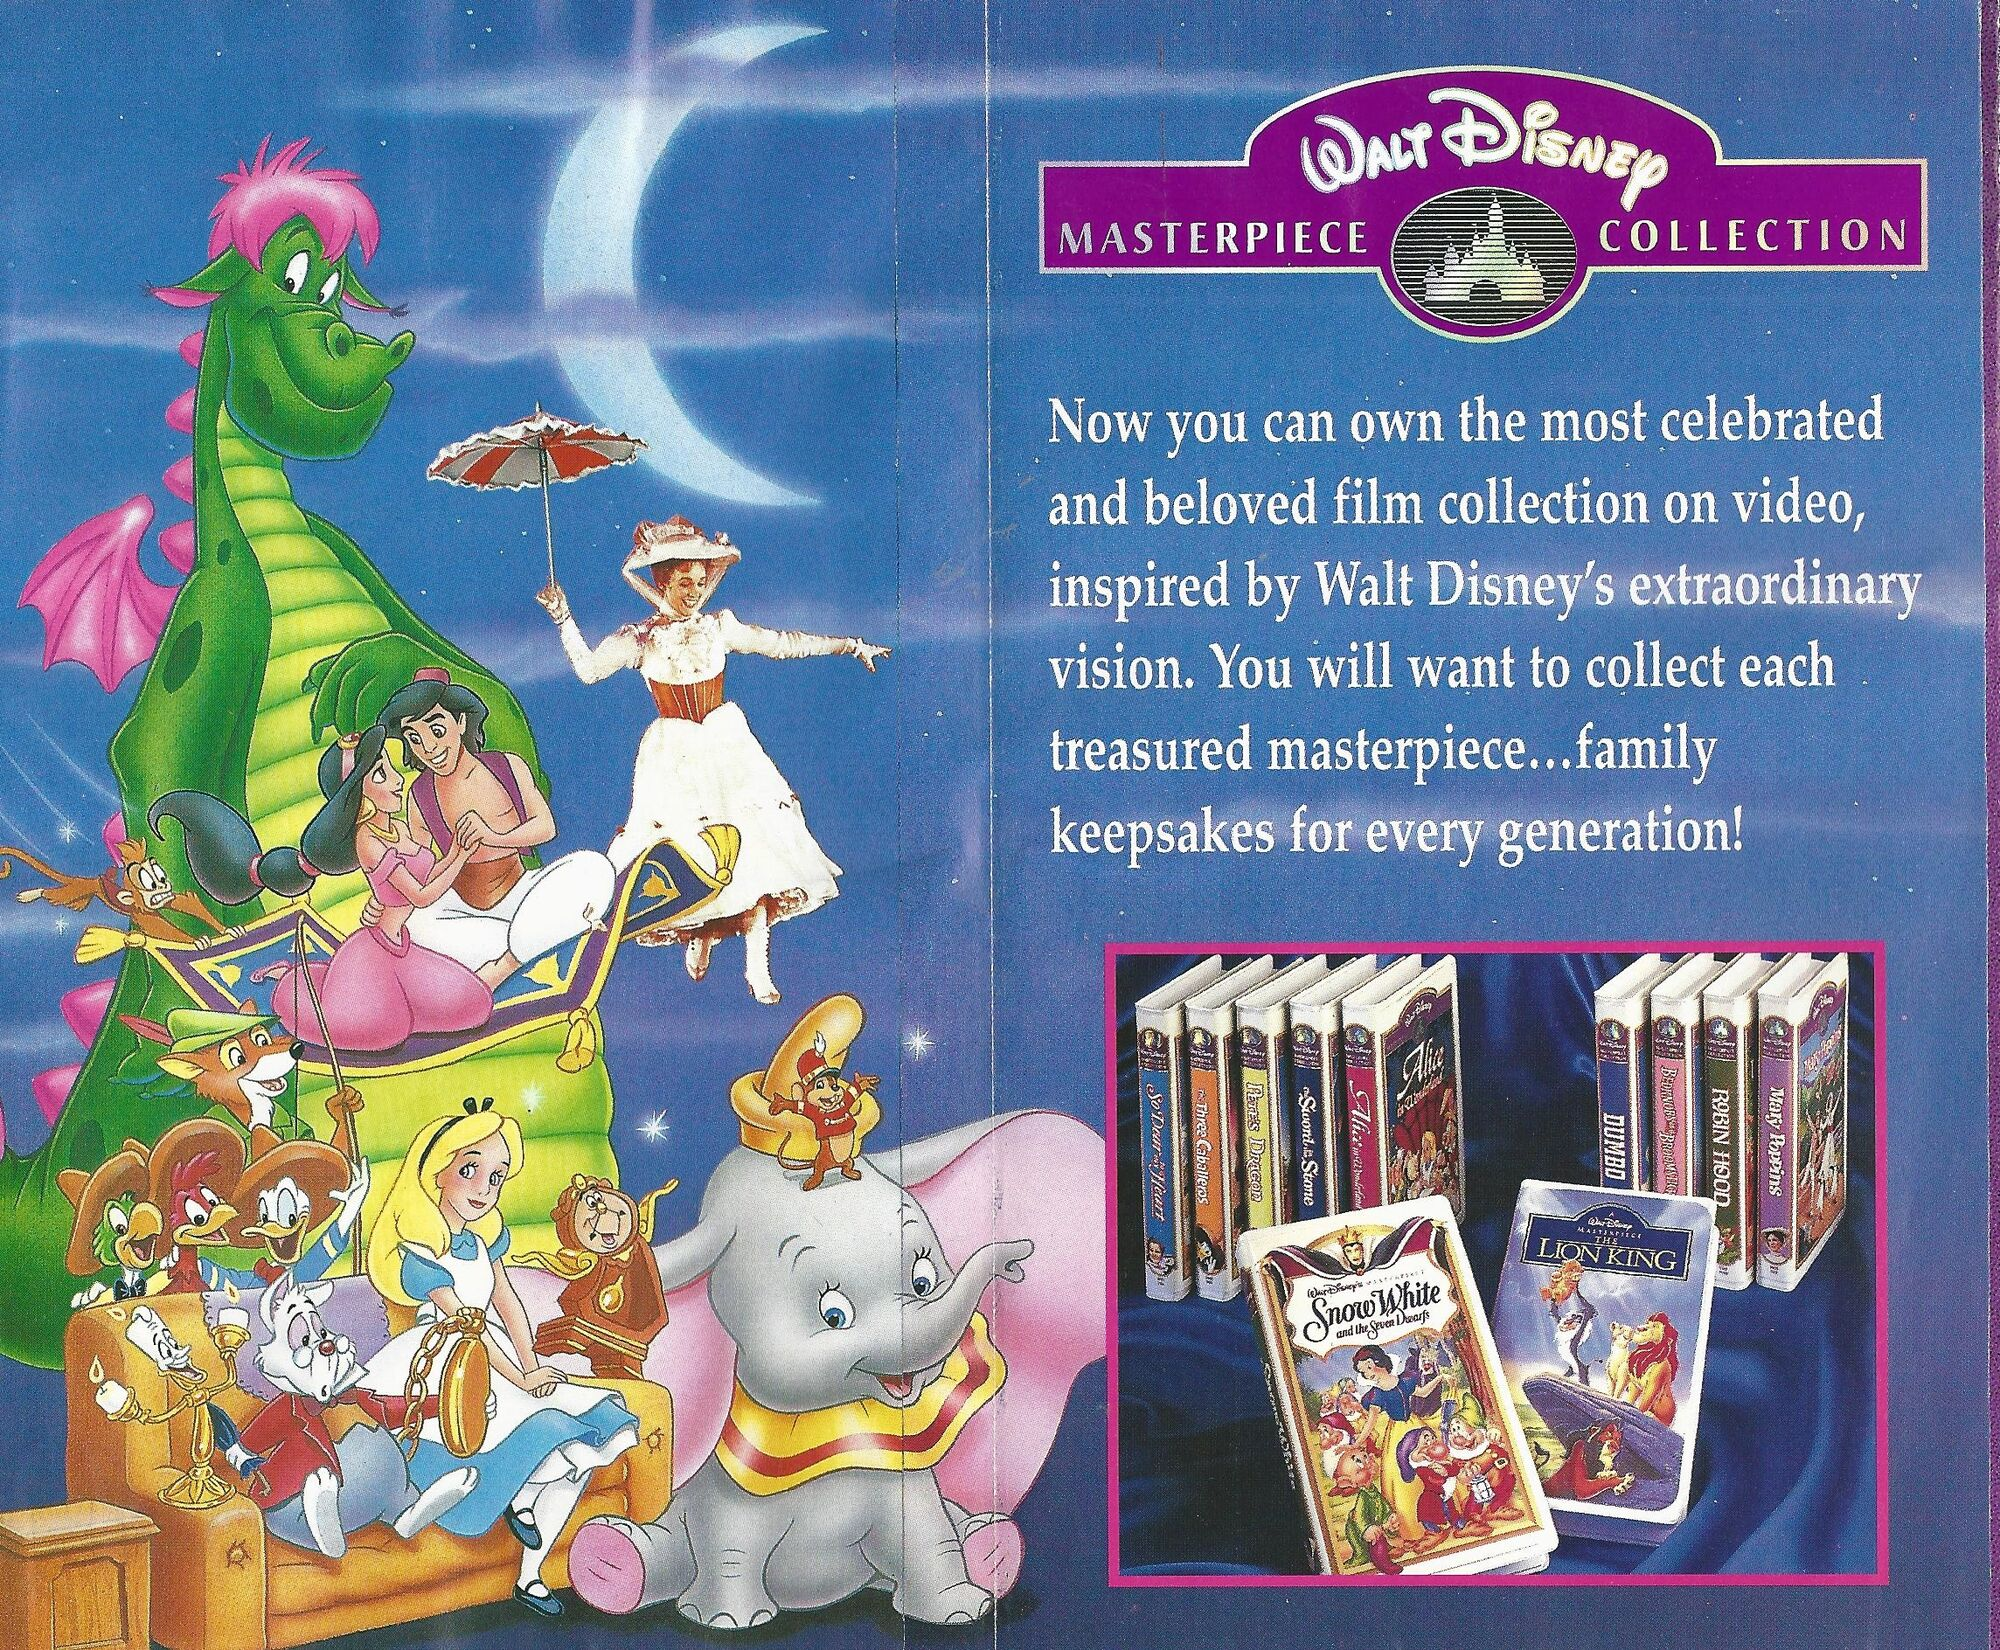 Image walt disney masterpiece collection 1995 for Classic house songs 2000